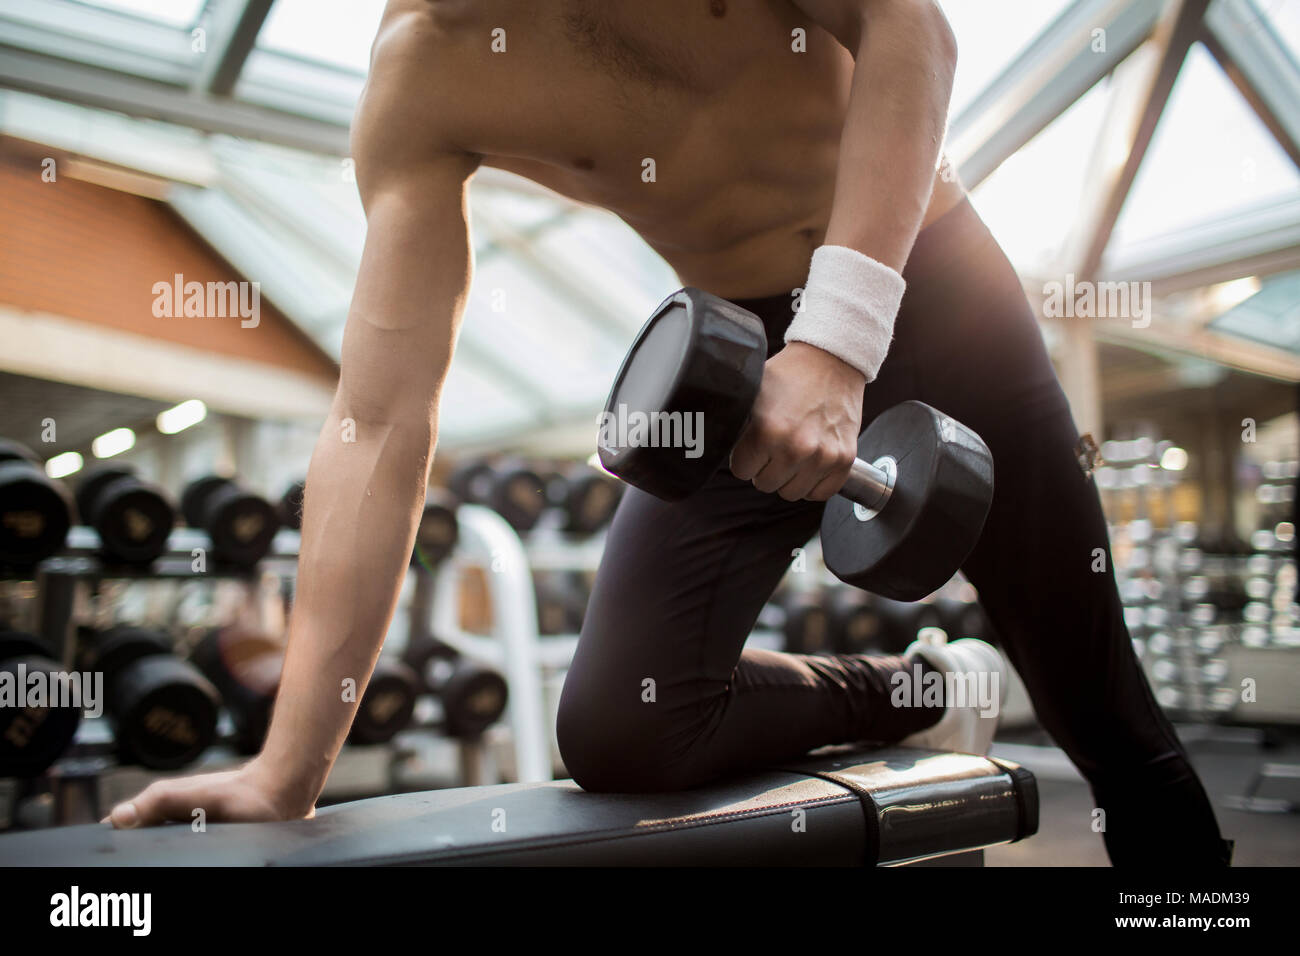 Shirtless guy with heavy dumbbell training his arm muscles while